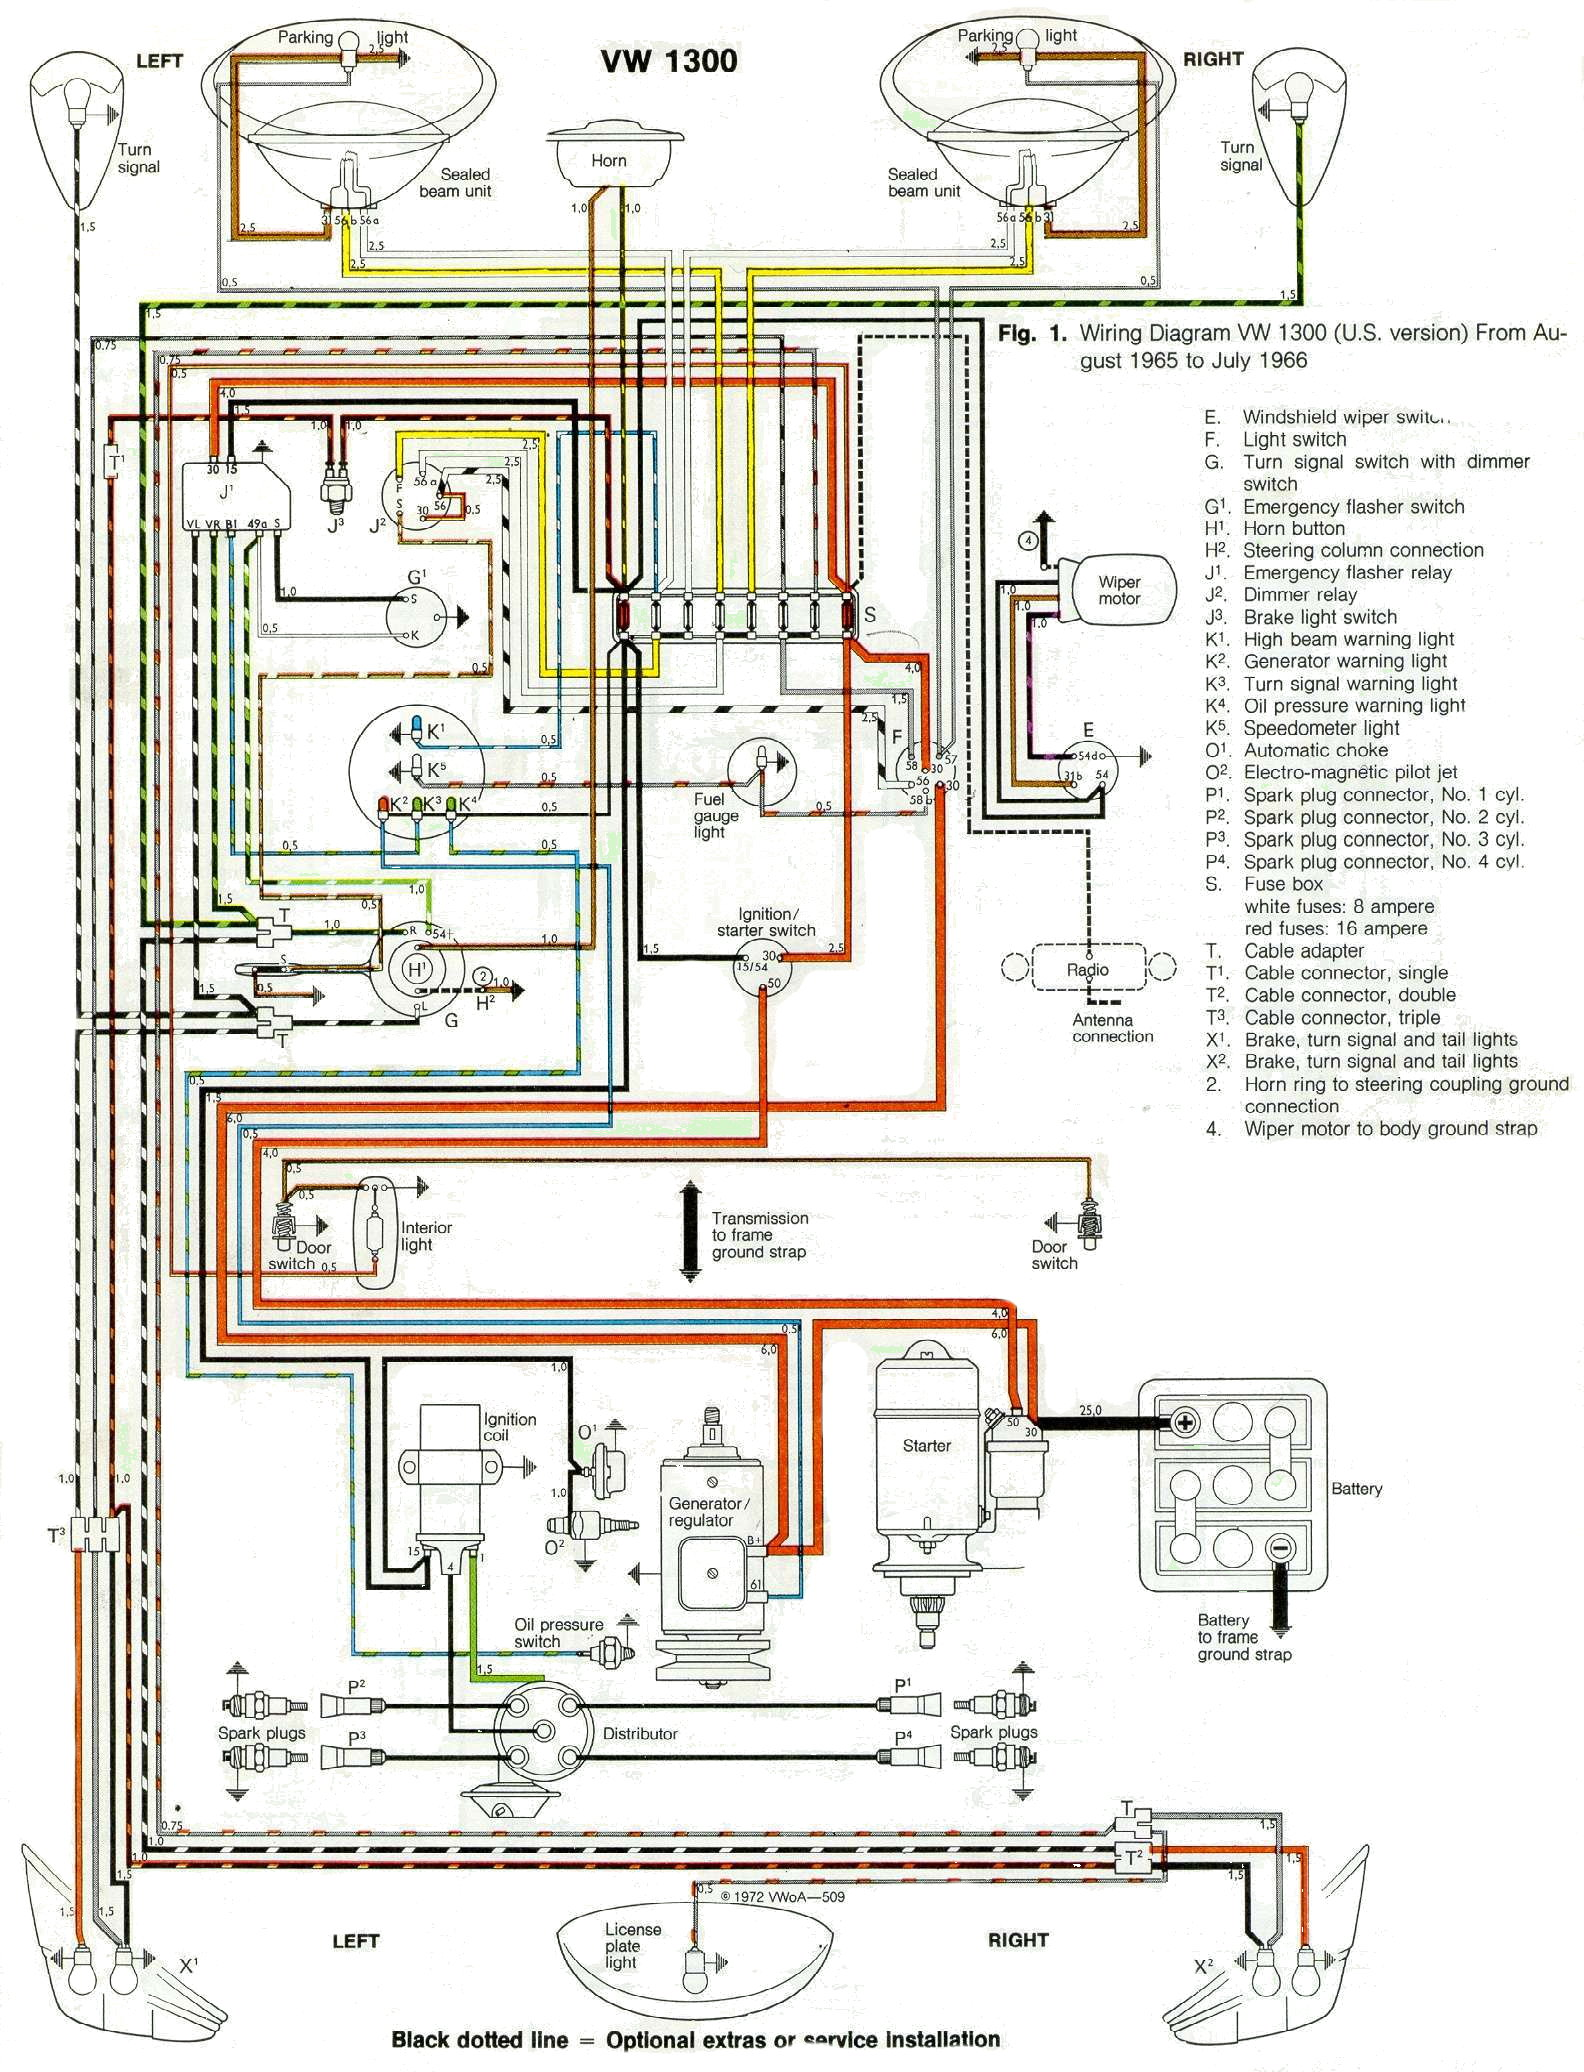 1966 Wiring 1966 wiring diagram vw wiring diagrams at webbmarketing.co